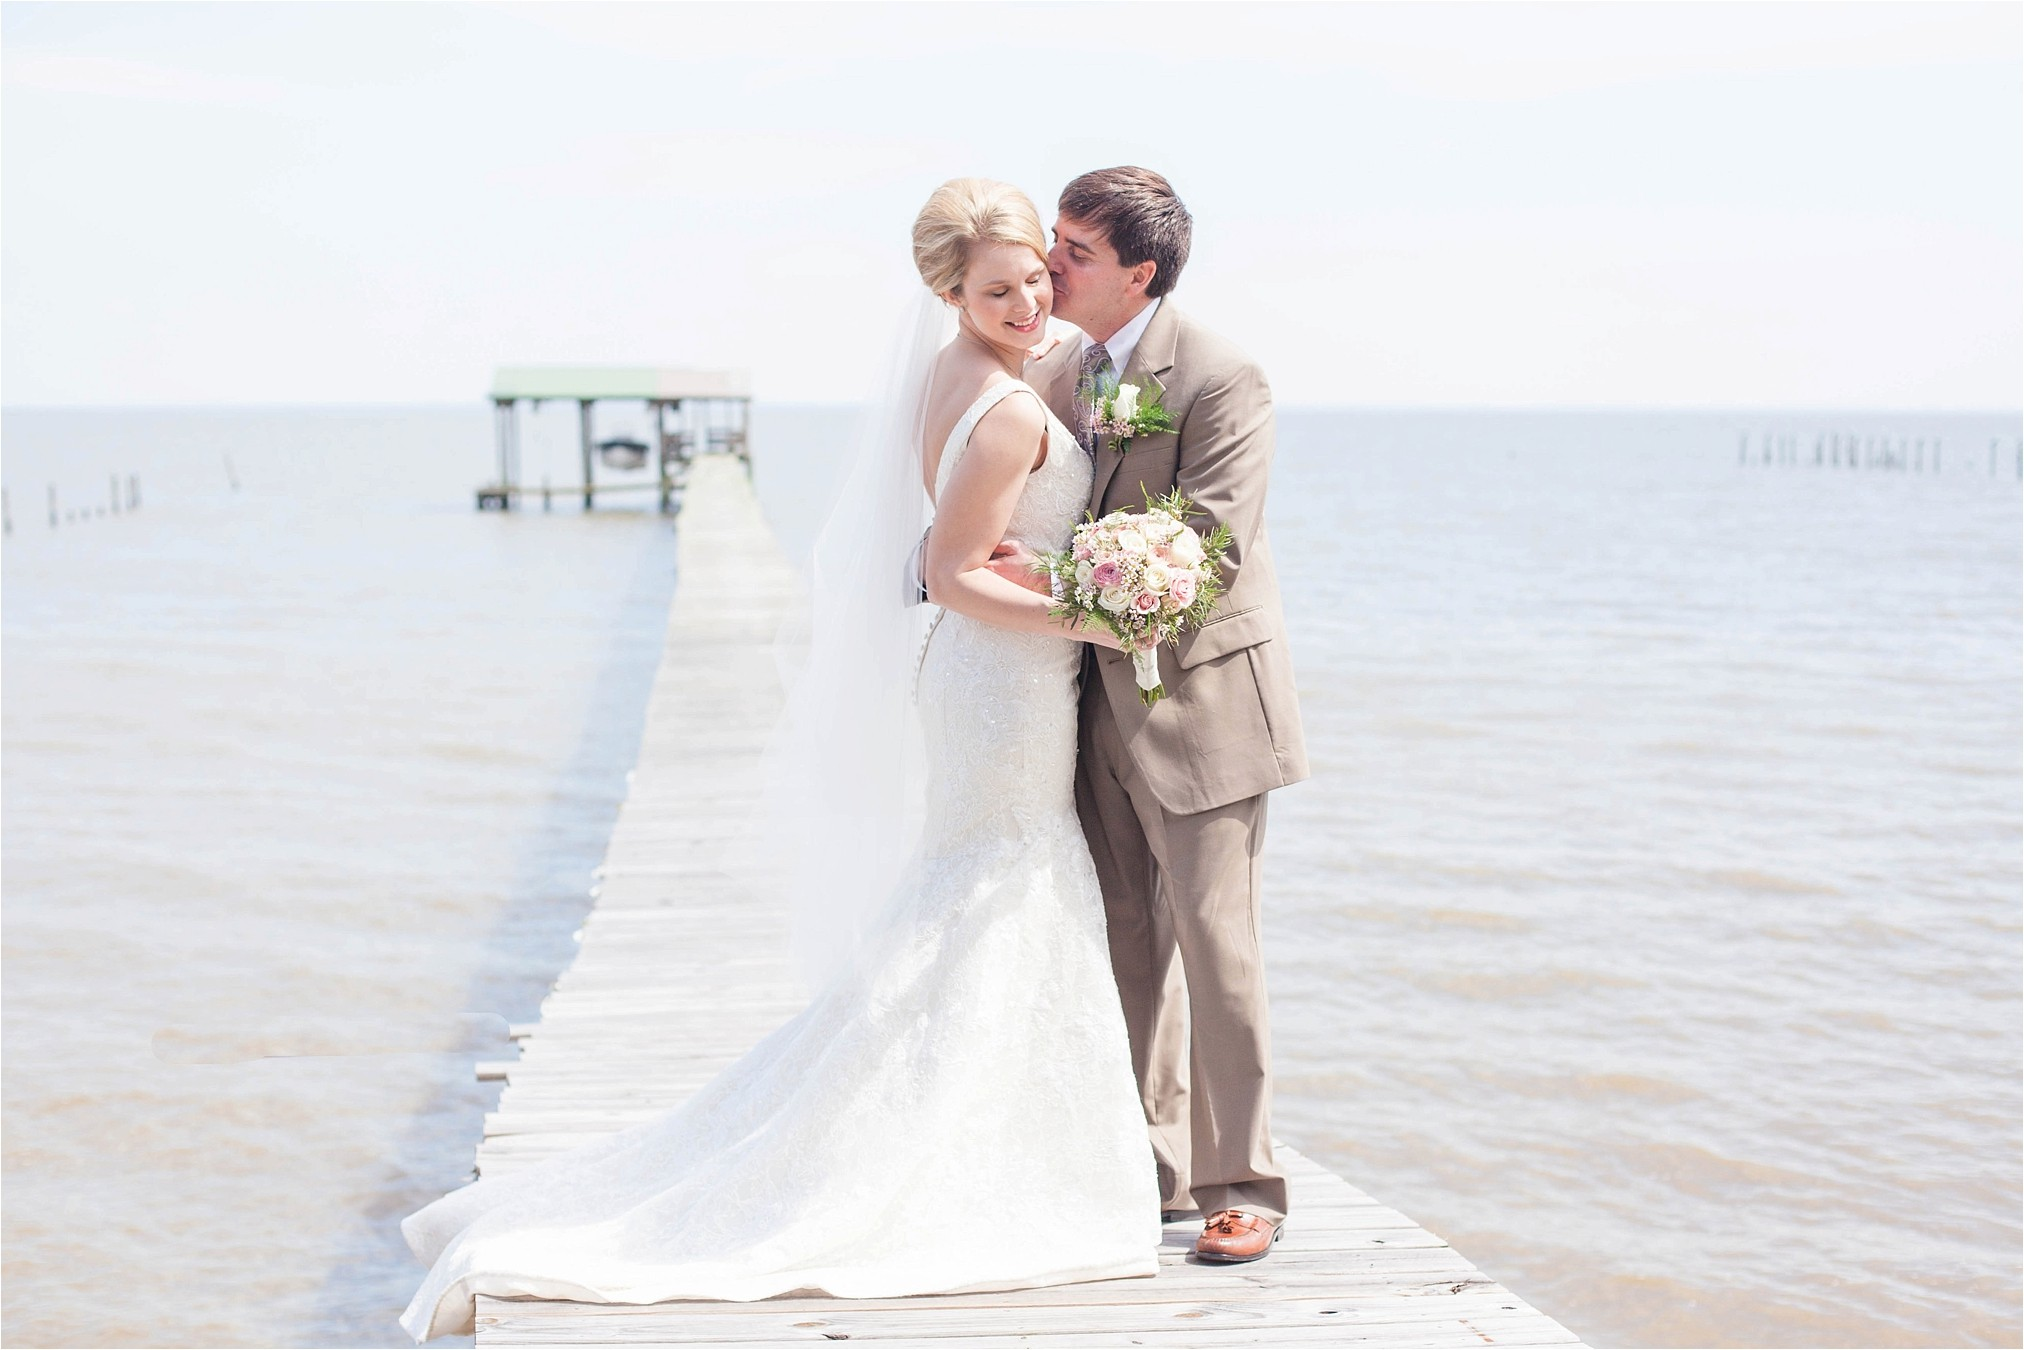 View More: http://annafilly.pass.us/thomaswedding